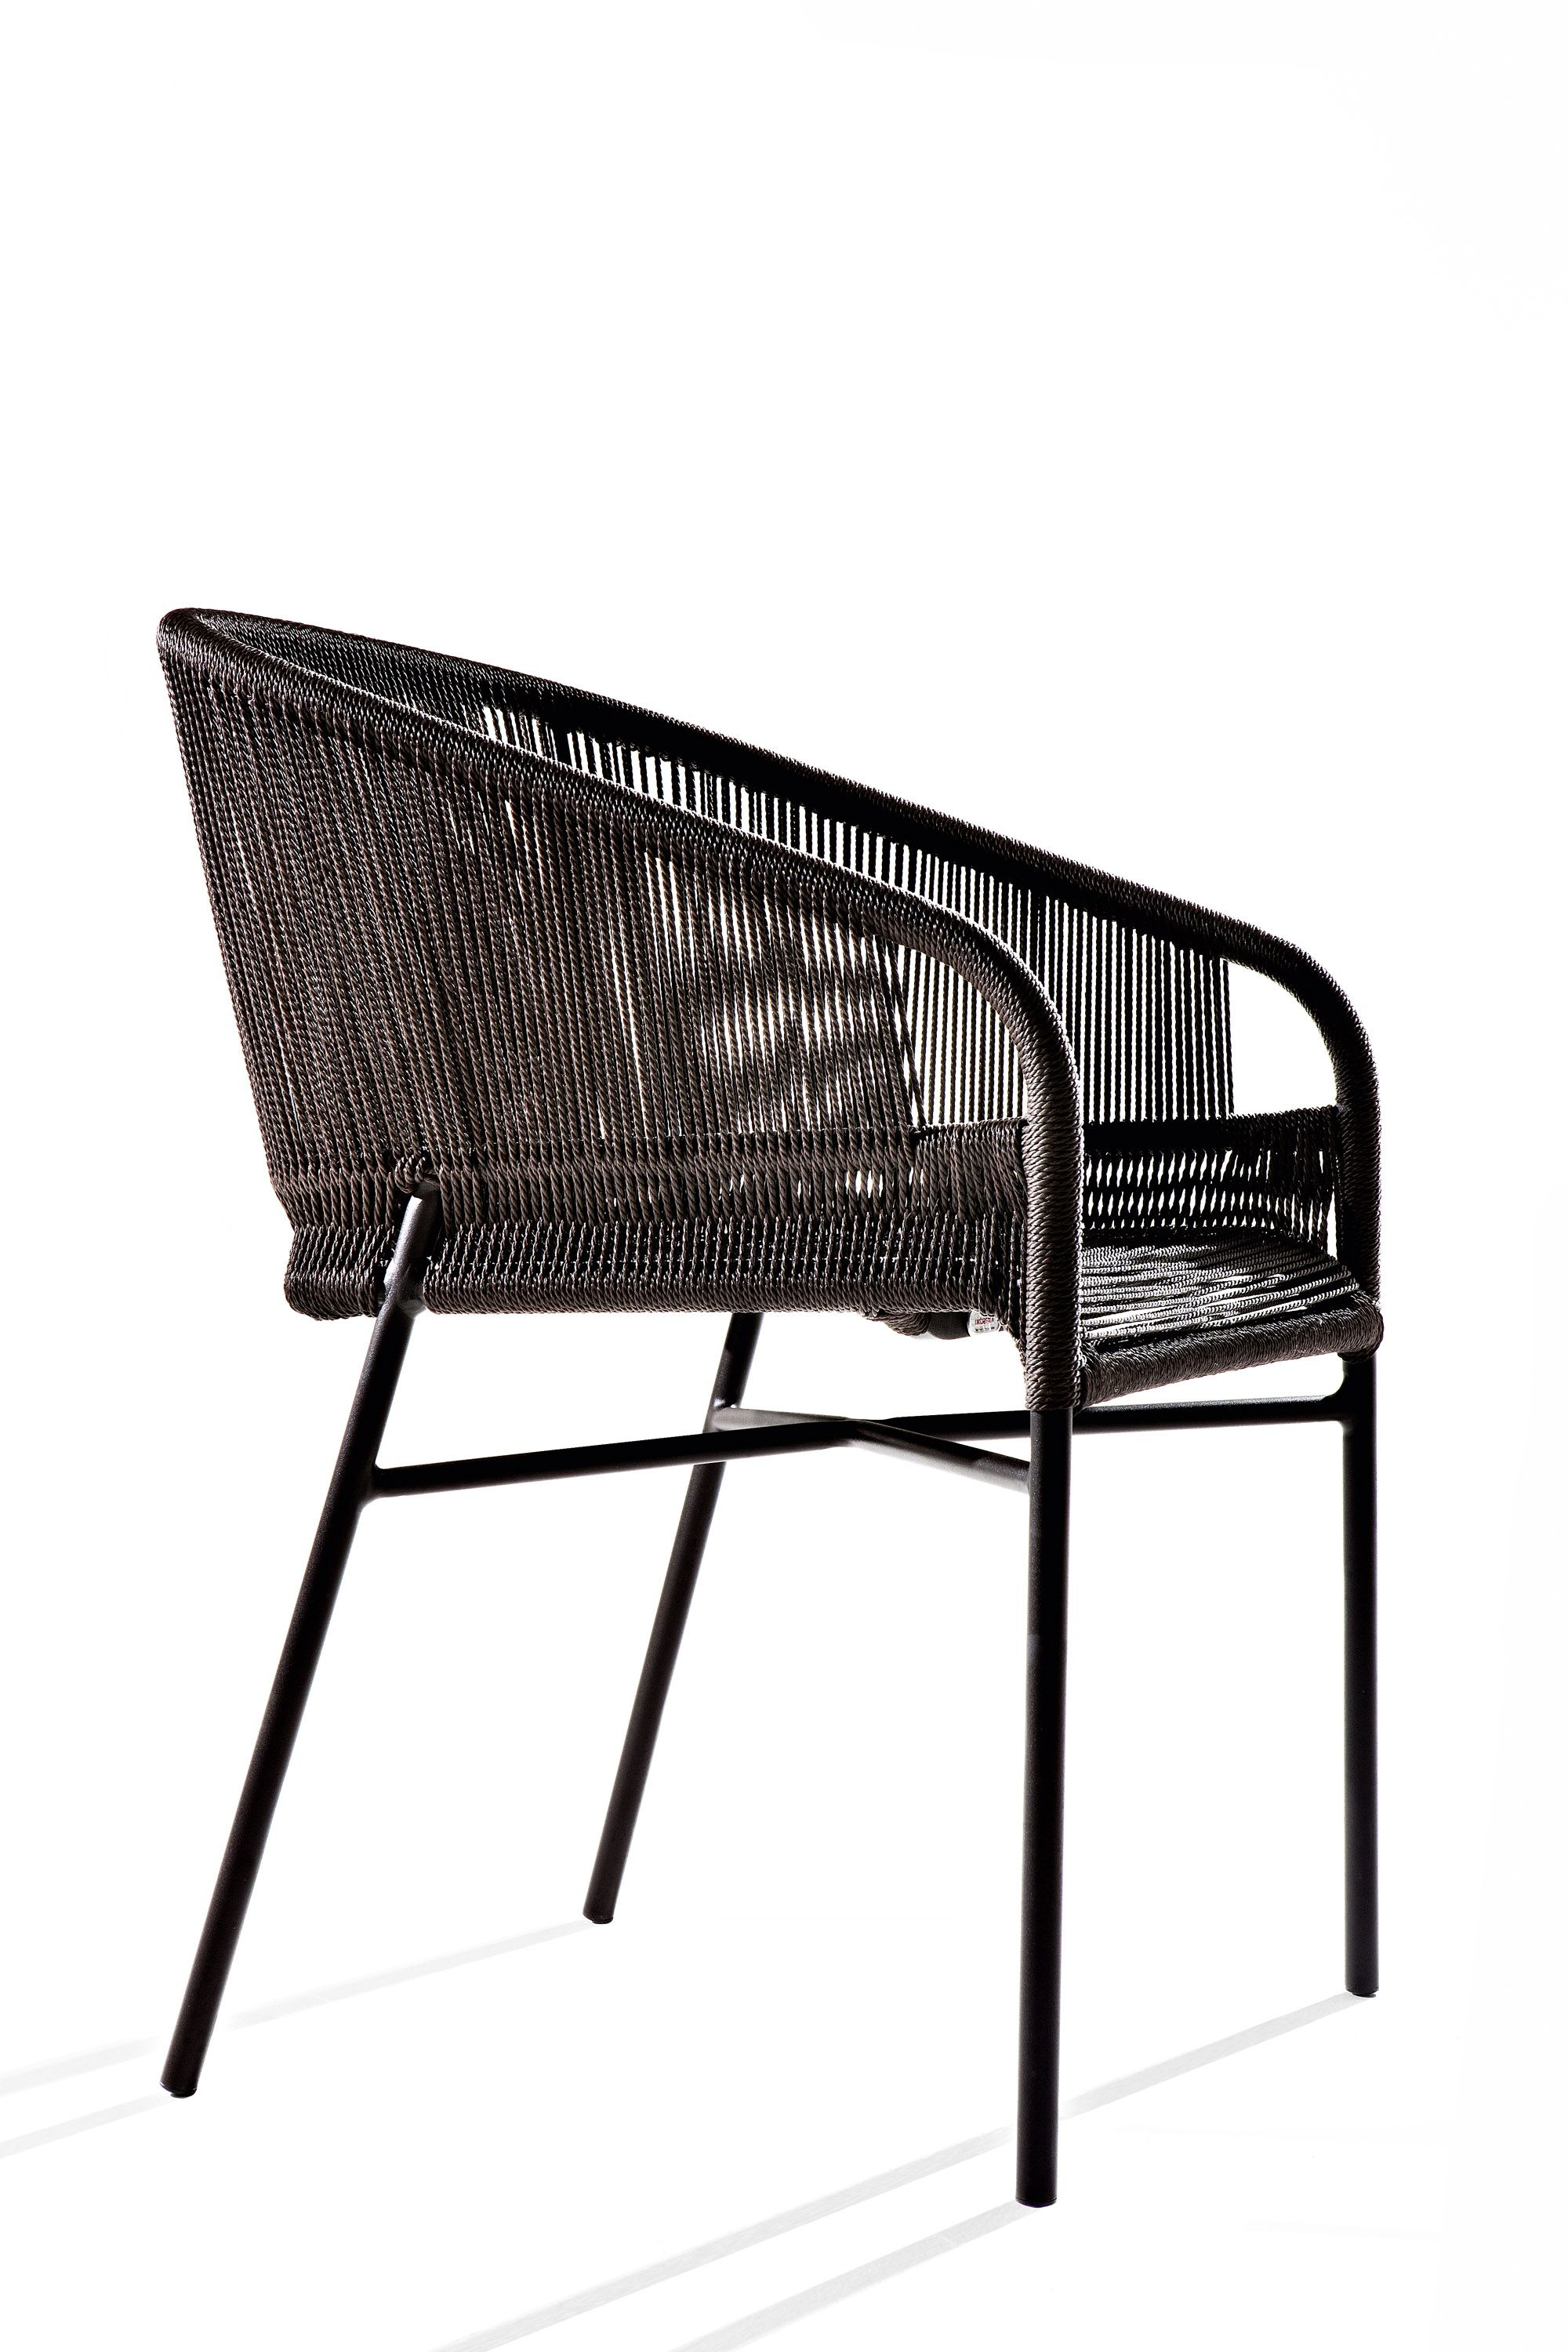 Anki Gneib Cricket Chairs Aluminium frame and hand woven man